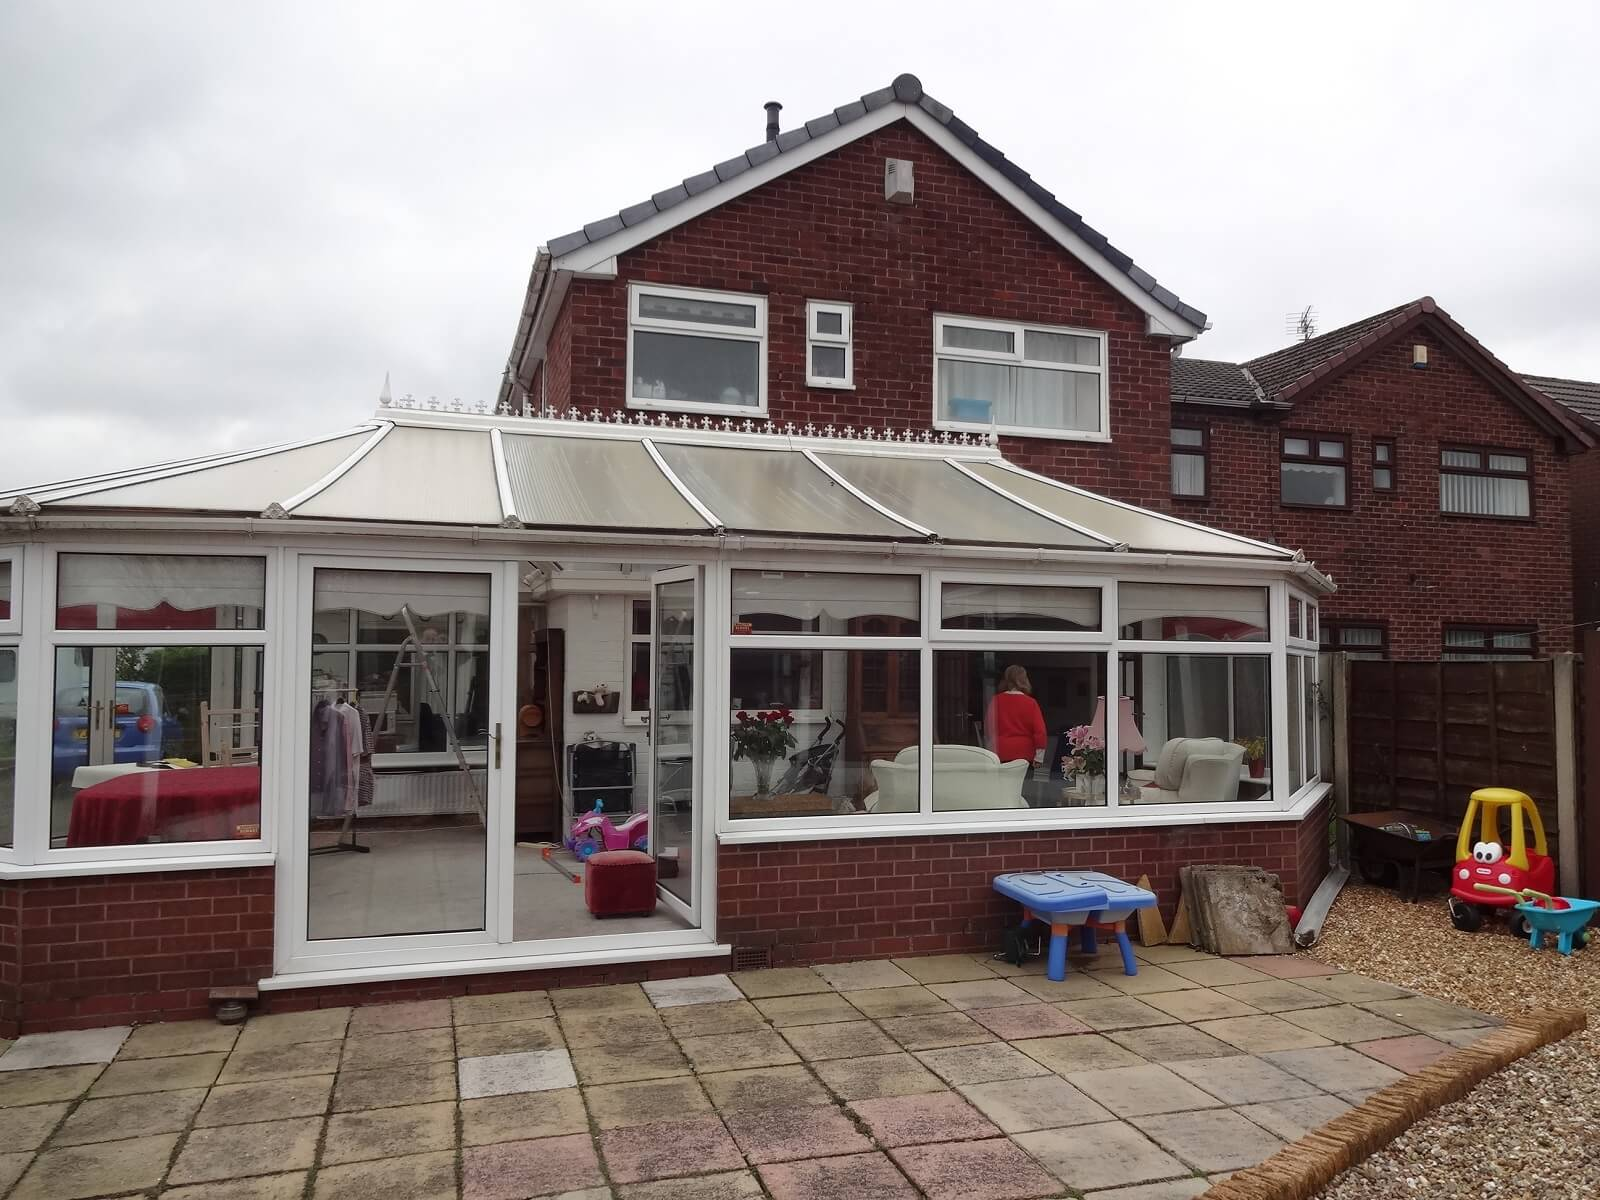 Conservatory roof replacement in Ashton under Lyne (before)